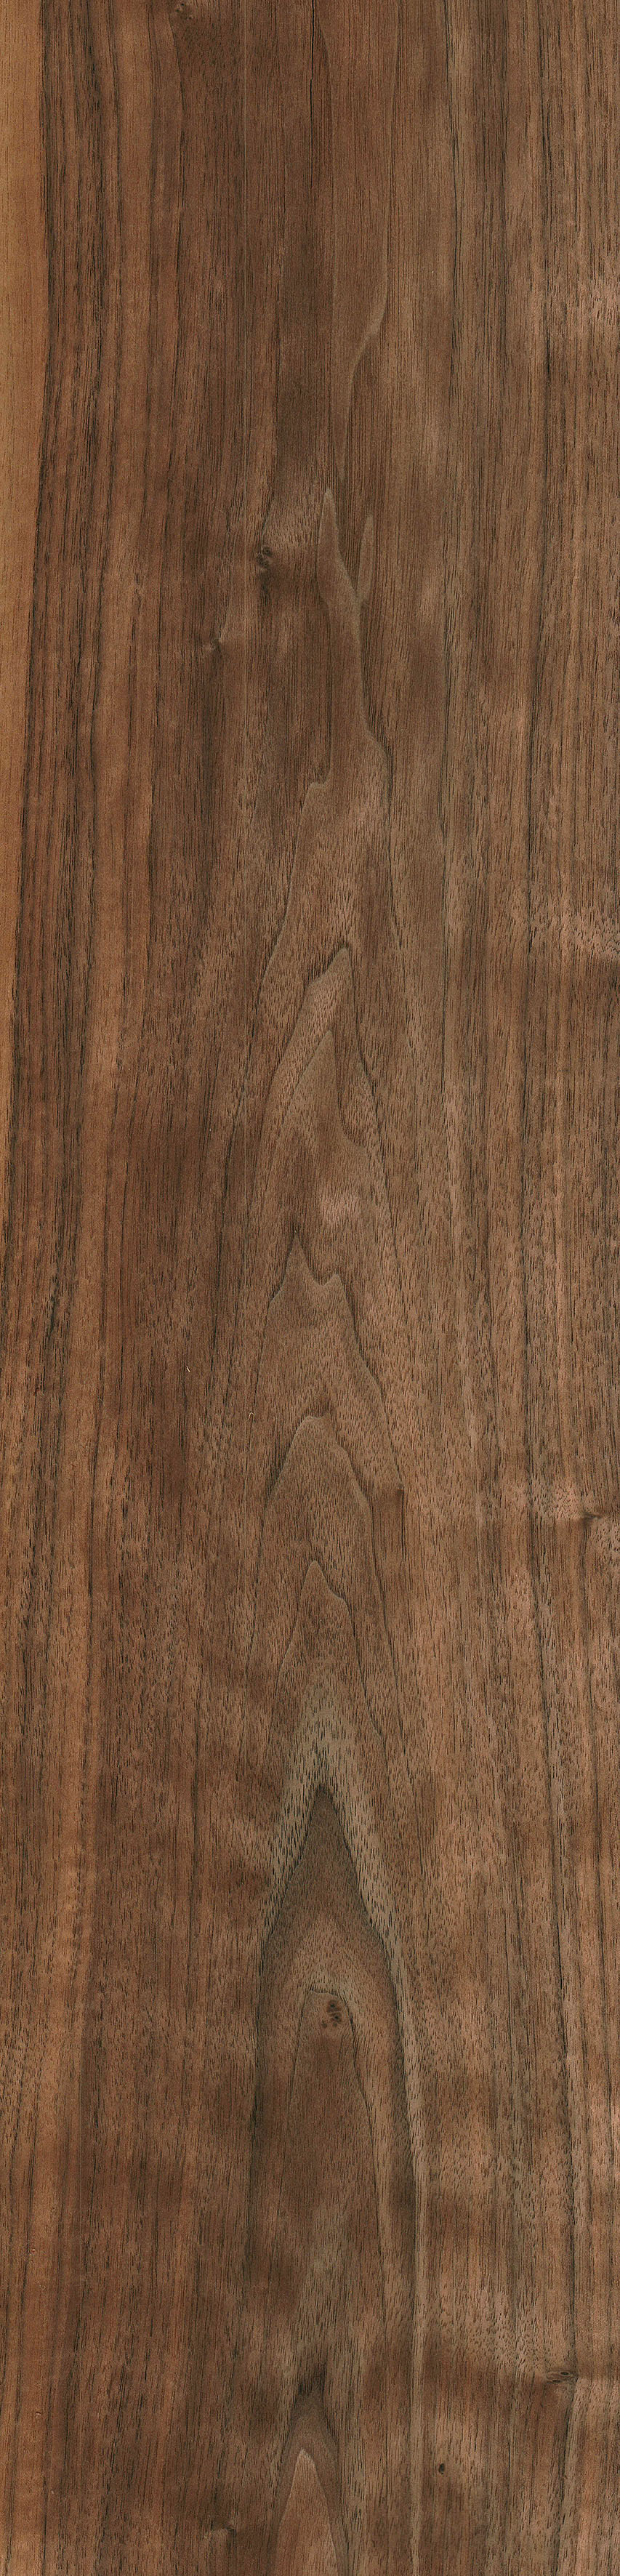 Black Walnut The Wood Database Lumber Identification